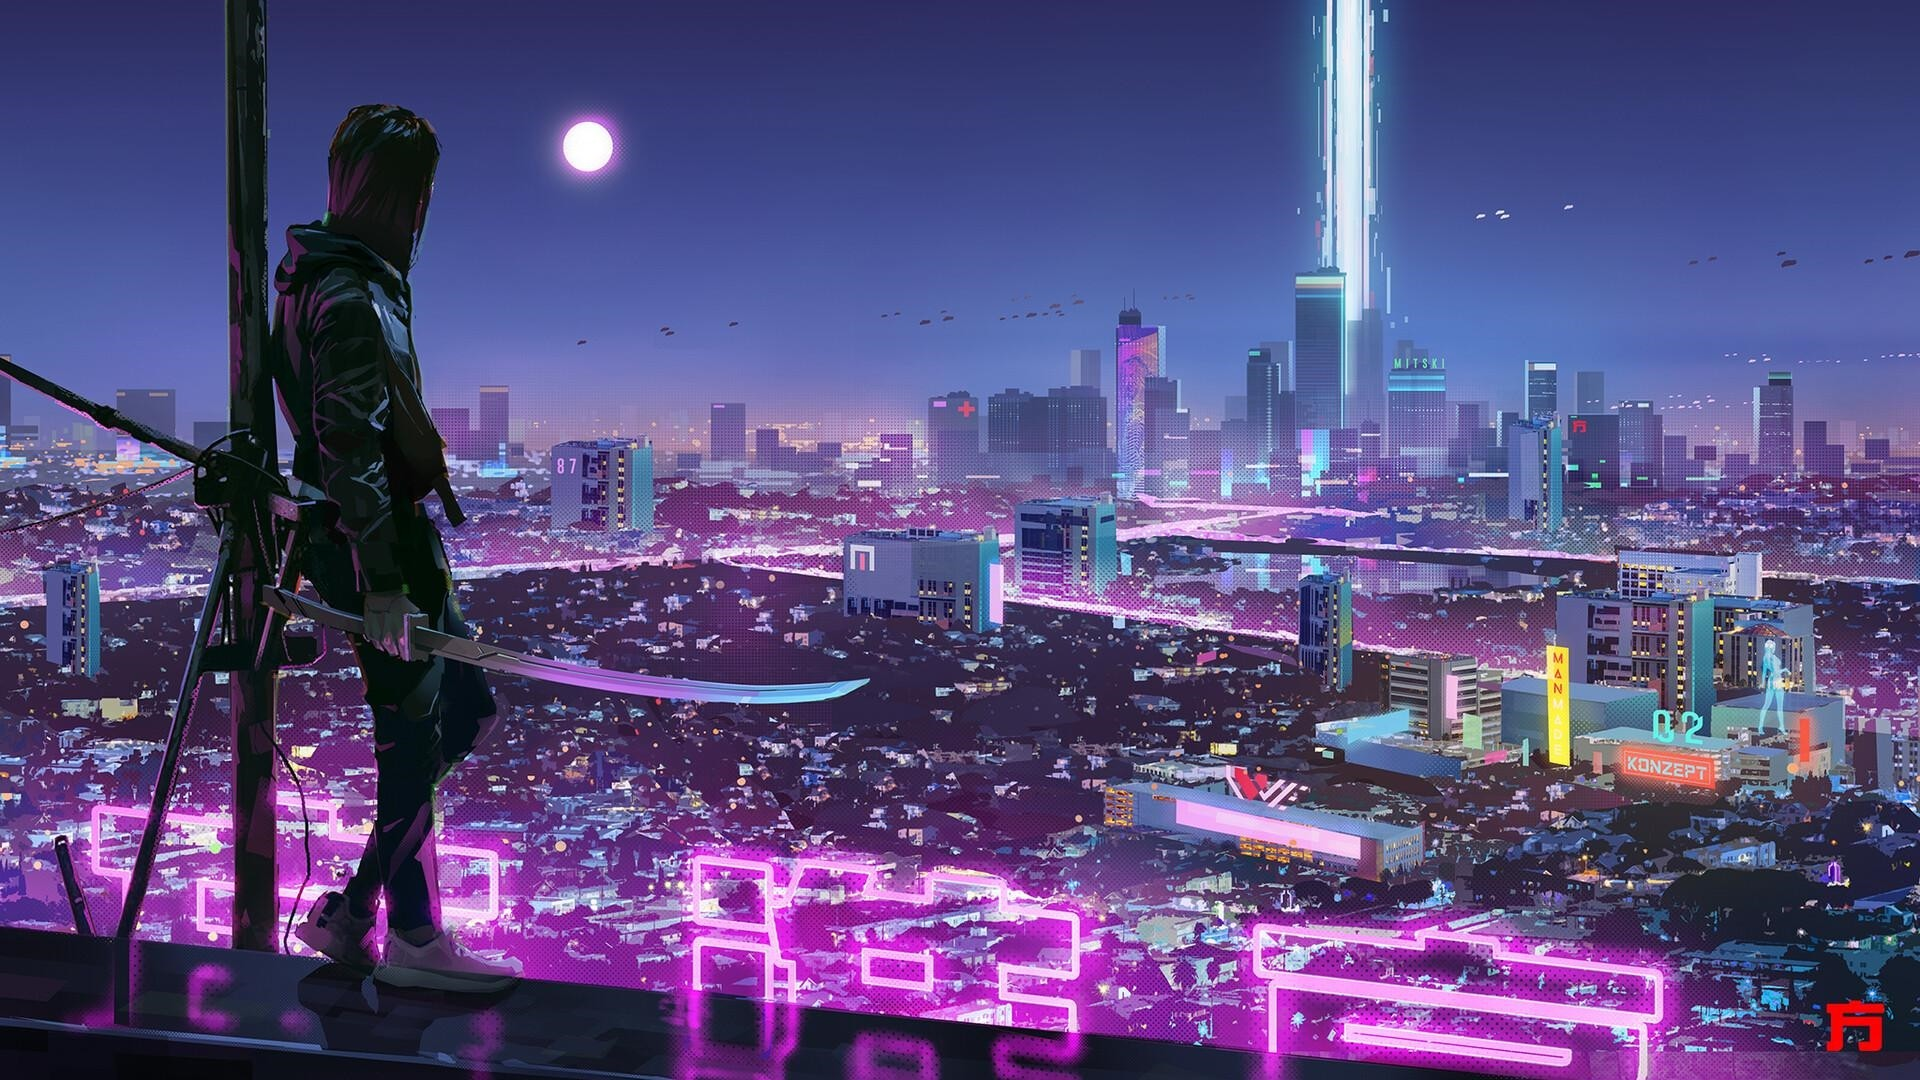 Anime Night Neon Picture